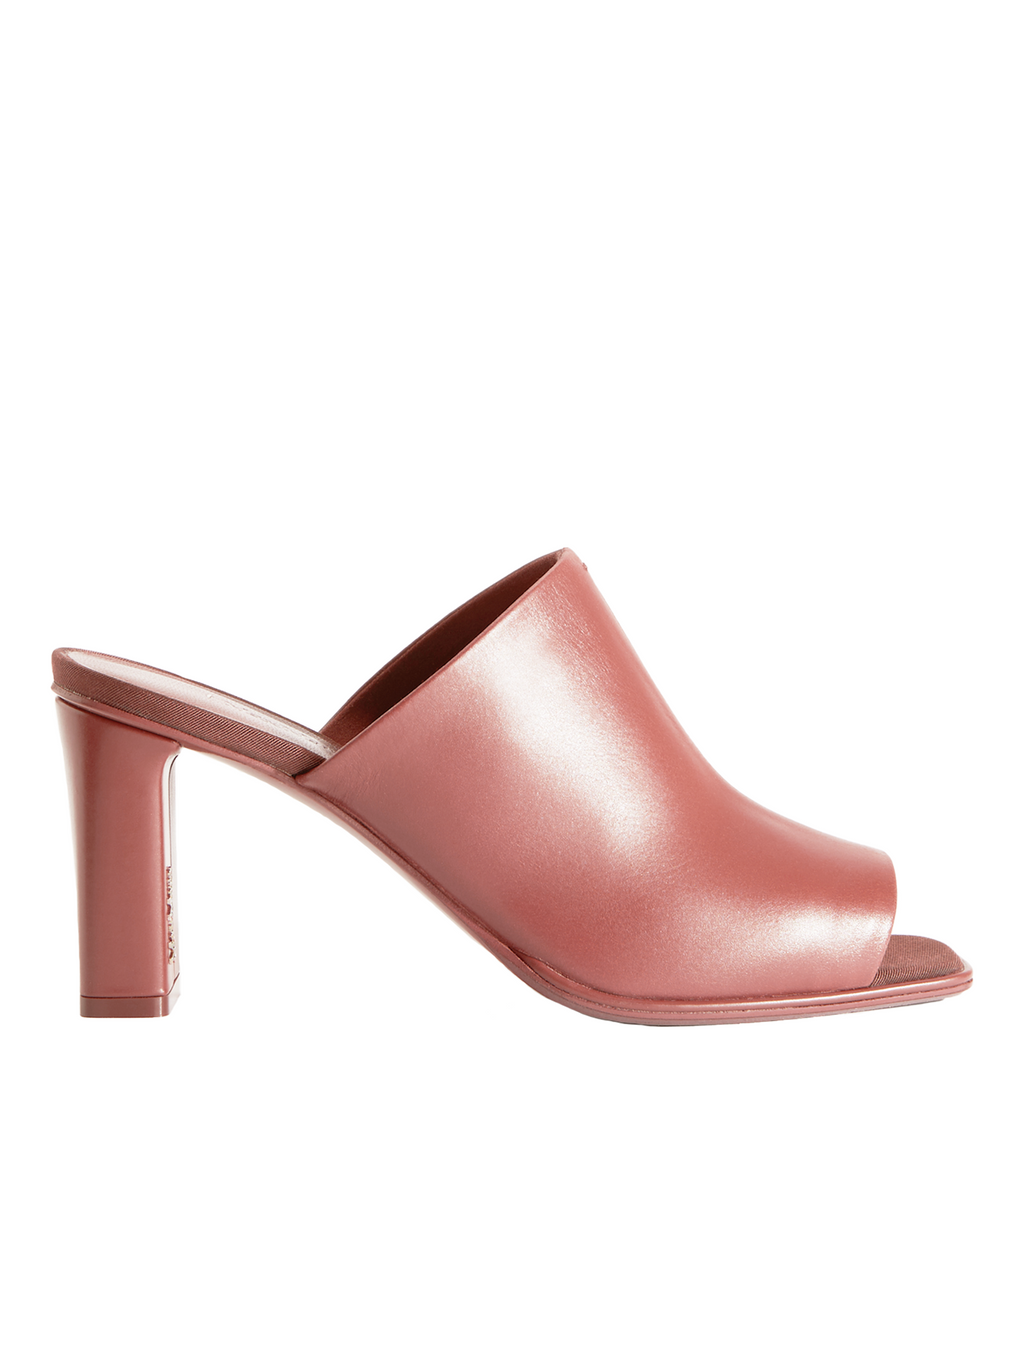 Max Mara Seline Leather Mule